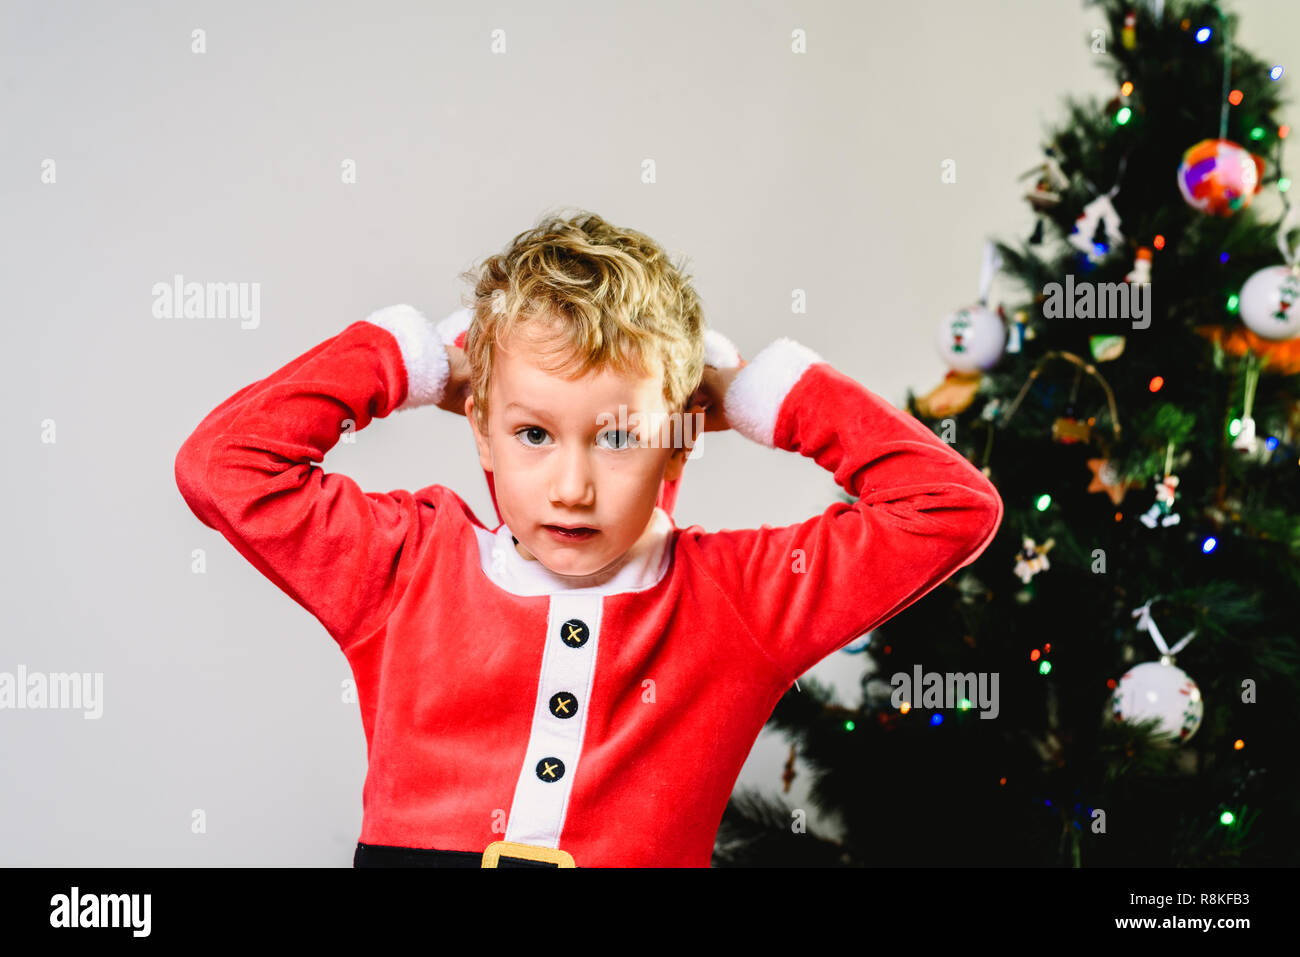 Toddler Christmas Tree Costume.Handsome And Blond Toddler Wearing Santa Costume Next To